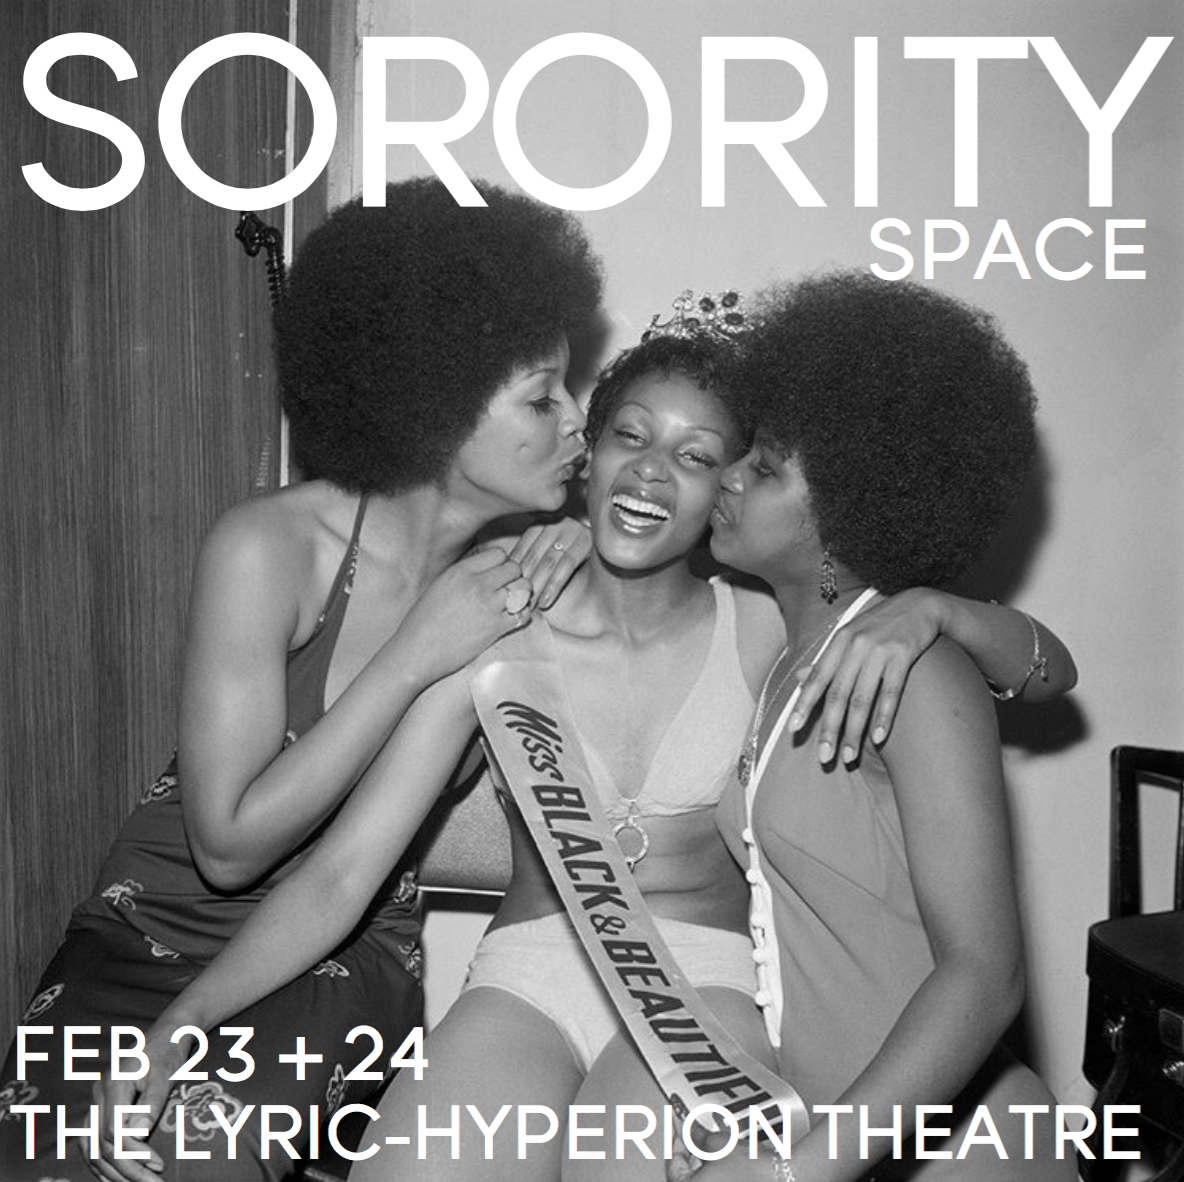 Very excited to share a new piece I wrote featuring some of my favorite songs this weekend at SORORITY. This very special edition of the SORORITY series features a lineup of incredibly talented Black Female Artists. We invite you to share our sacred space. Tickets are available at  https://www.brownpapertickets.com/event/3280046